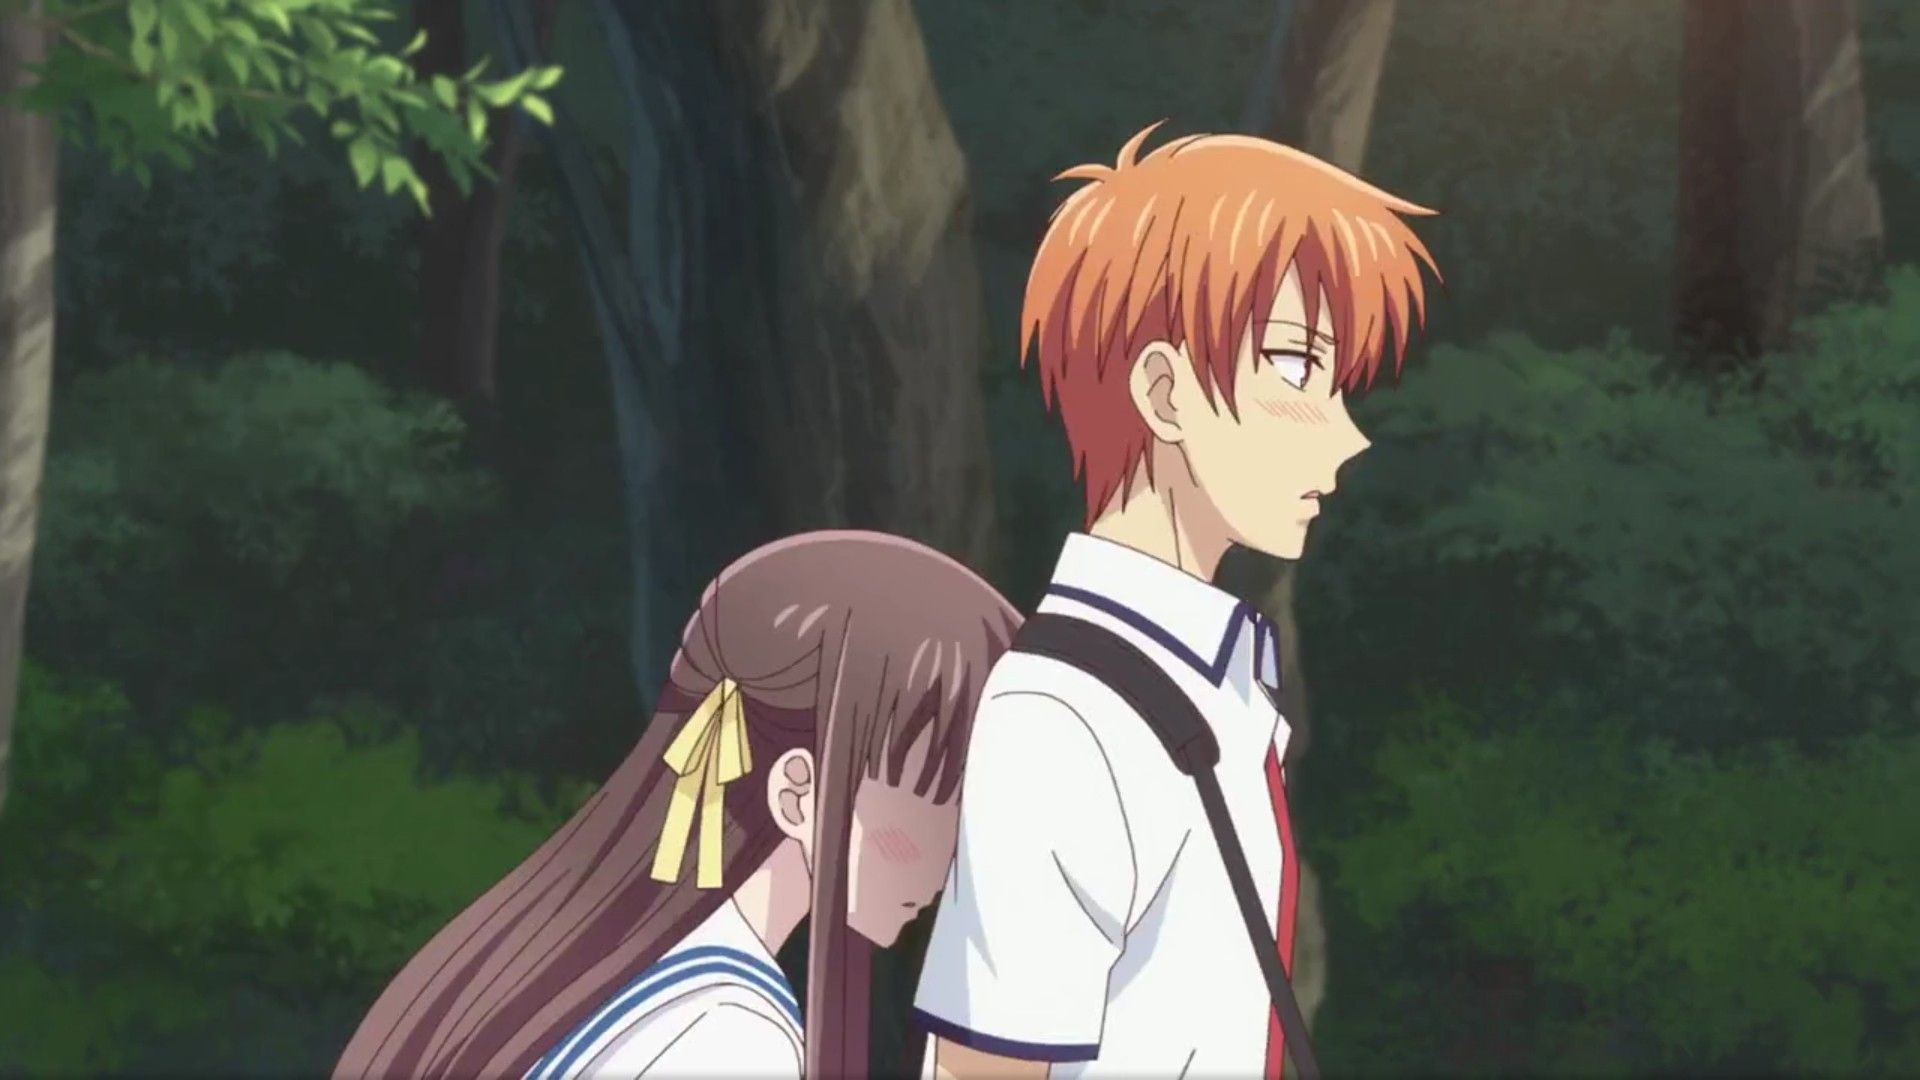 Pin de Pulloutnd en Fruits Basket Anime, Imagenes kawaii